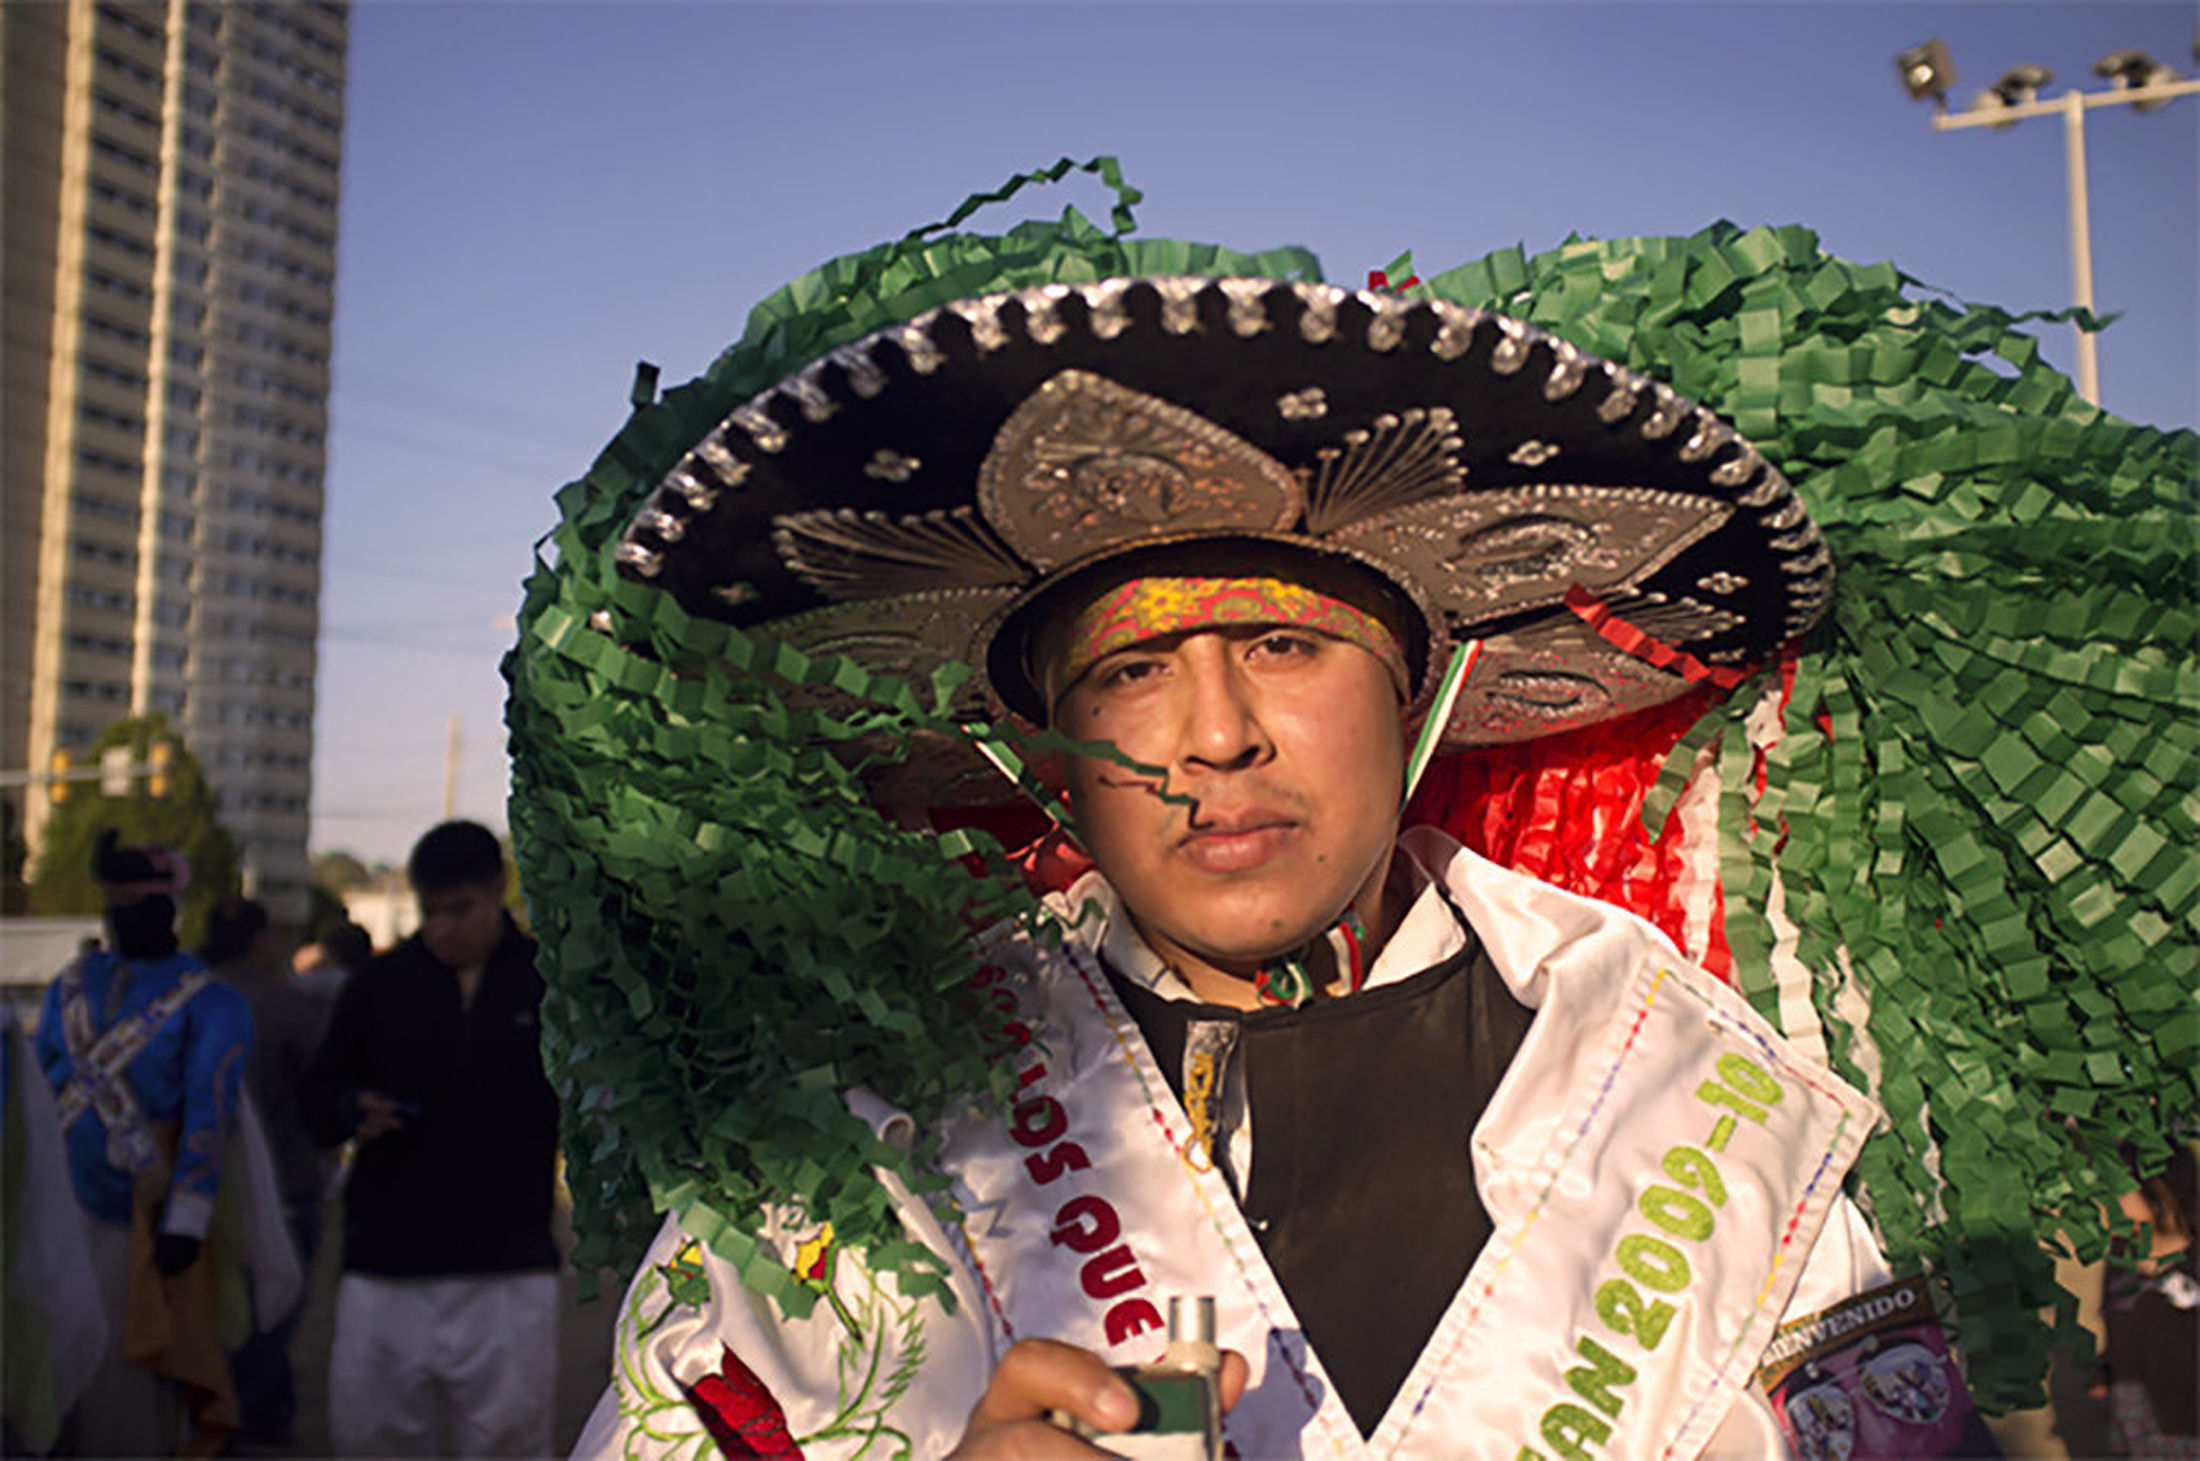 cincodemayo2-1.jpg